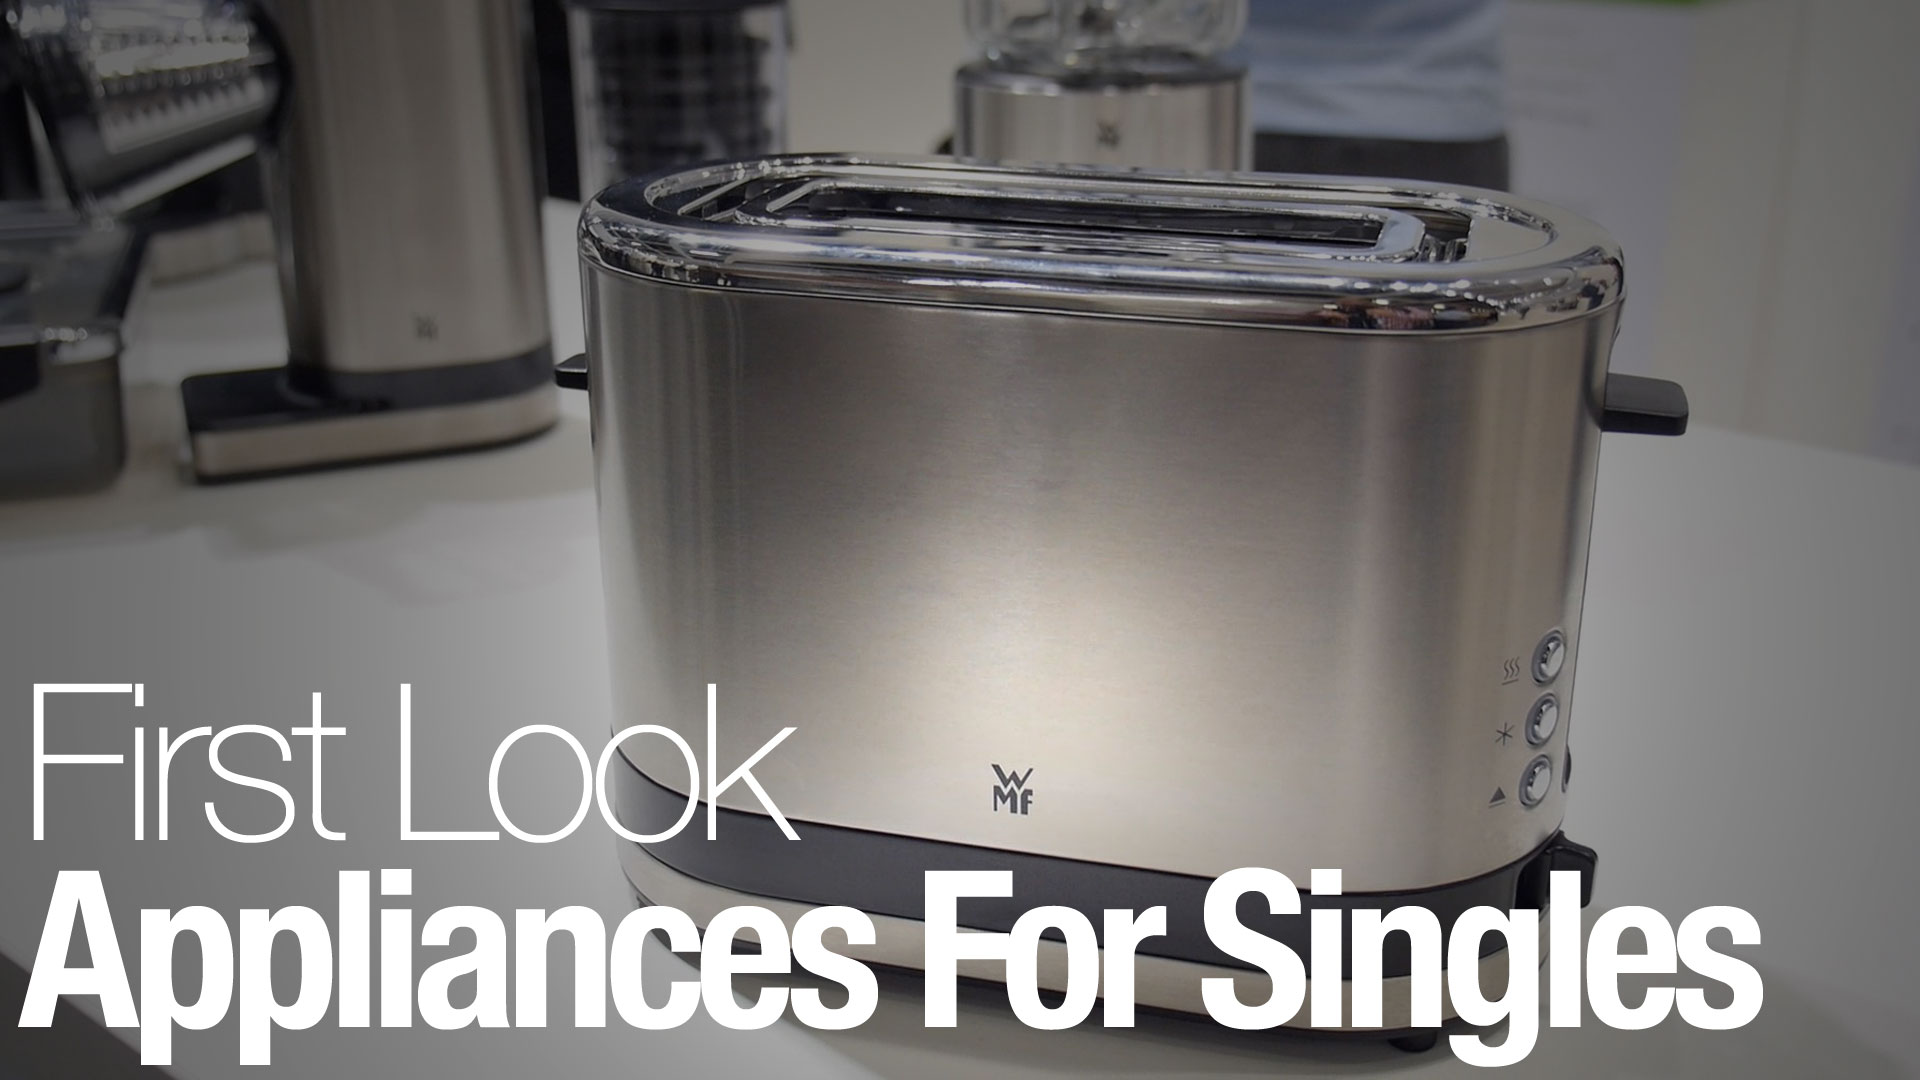 This One-Slice Toaster Is Perfect For People Who Live Alone